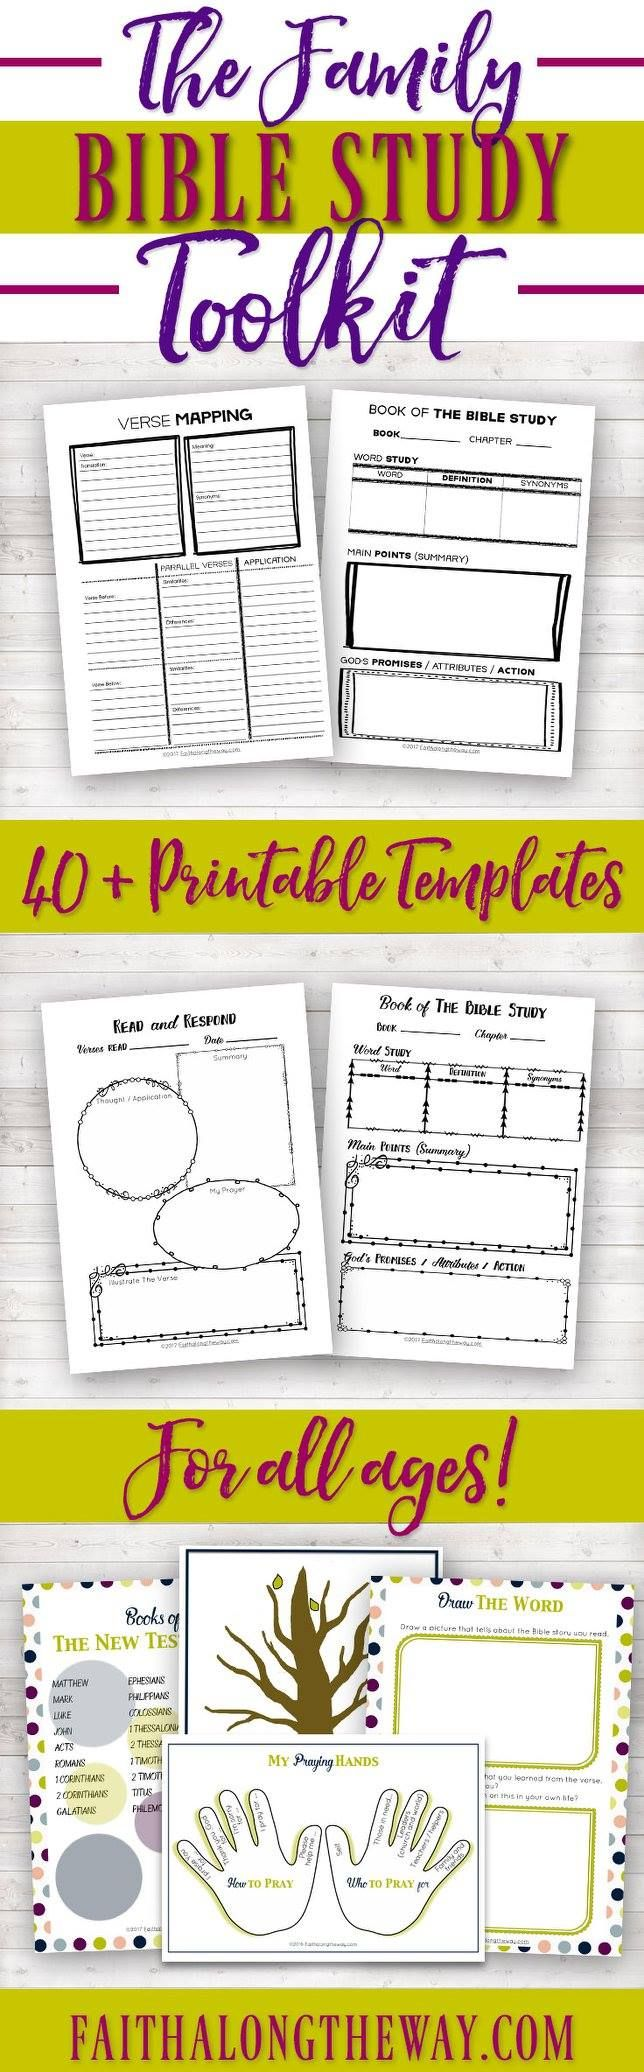 The Family Bible Study Toolkit|Bible Study|Printable|Women's|Kid's|Bible Journaling Templates|Men's|Guide